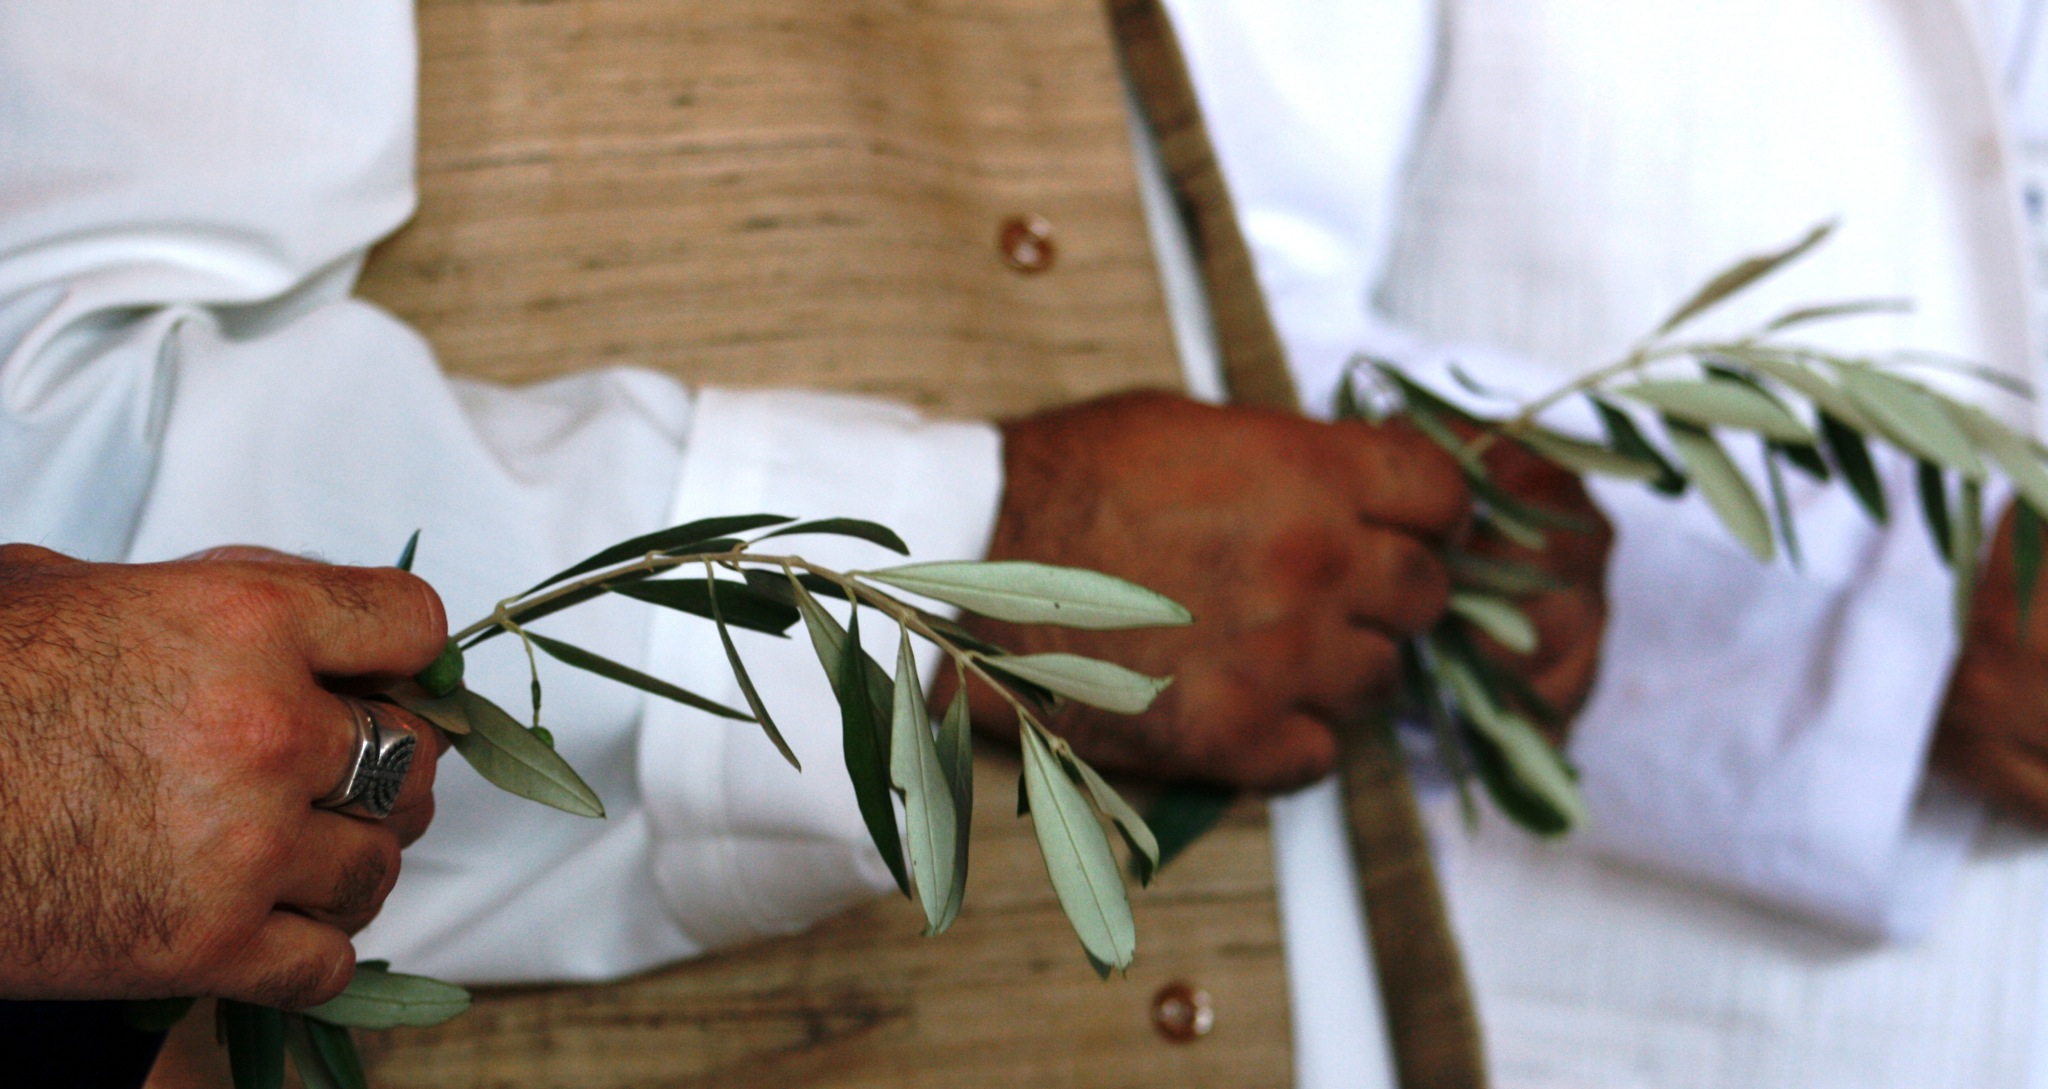 Olive branches held for peace